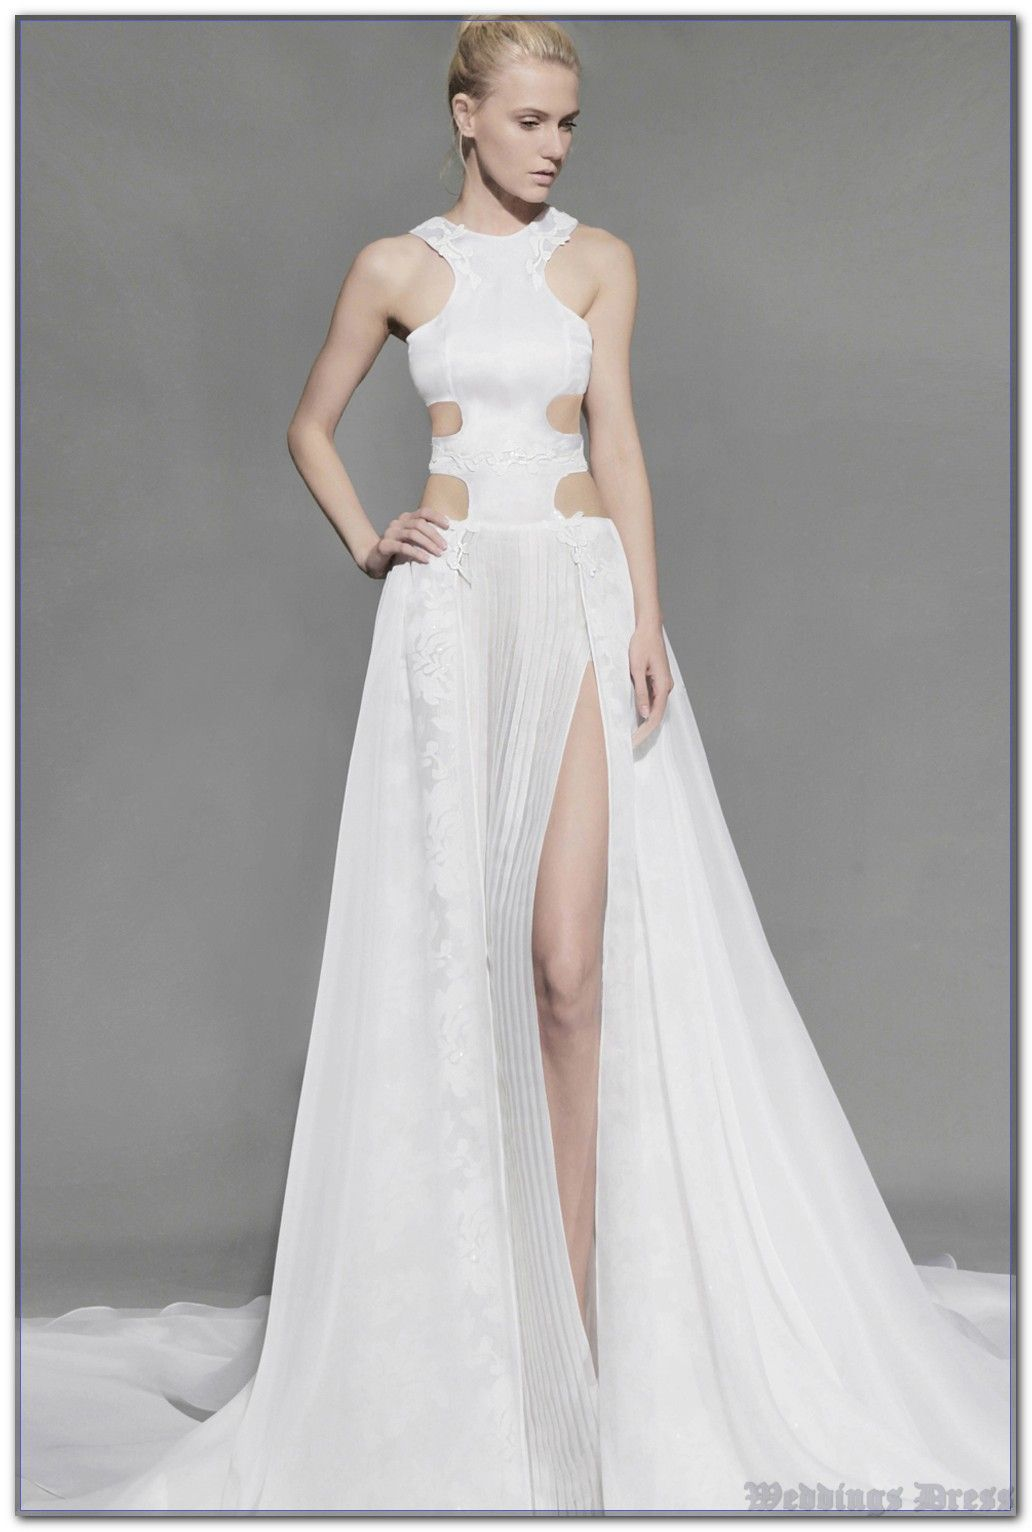 How To Make Your Product Stand Out With Weddings Dress